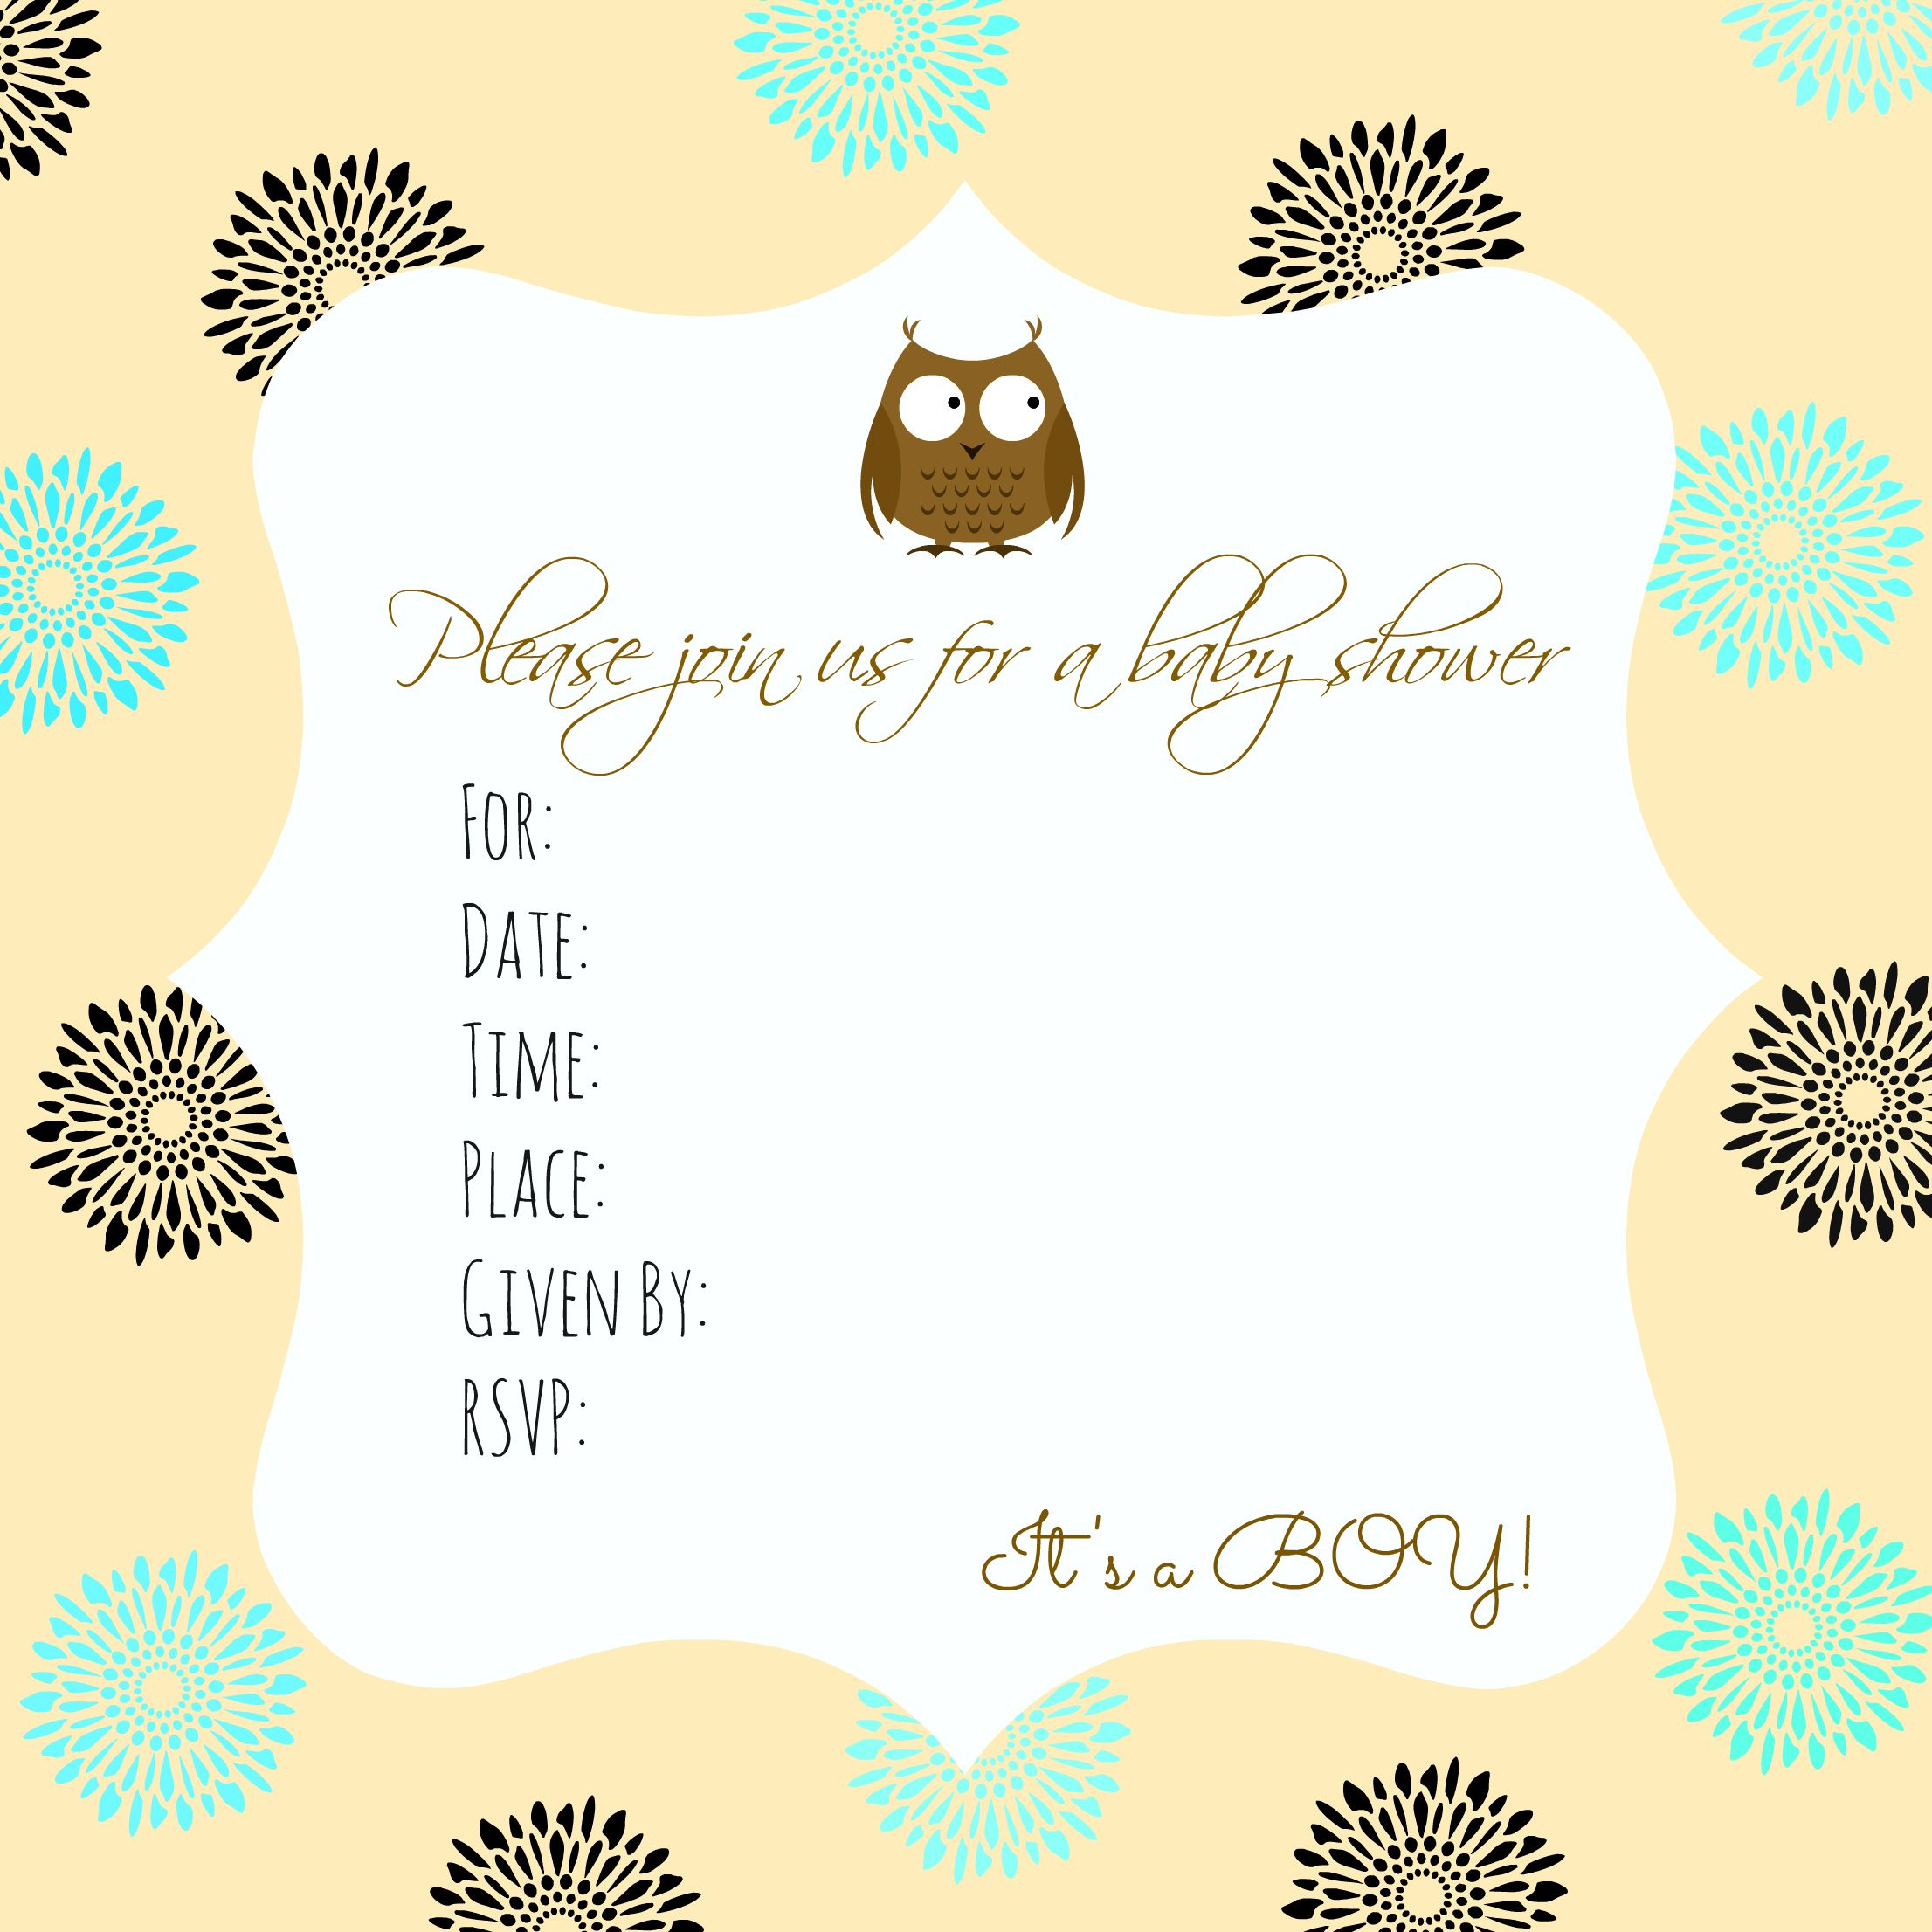 17 best images about printable baby shower invitations on 17 best images about printable baby shower invitations baby shower parties artworks and invitations